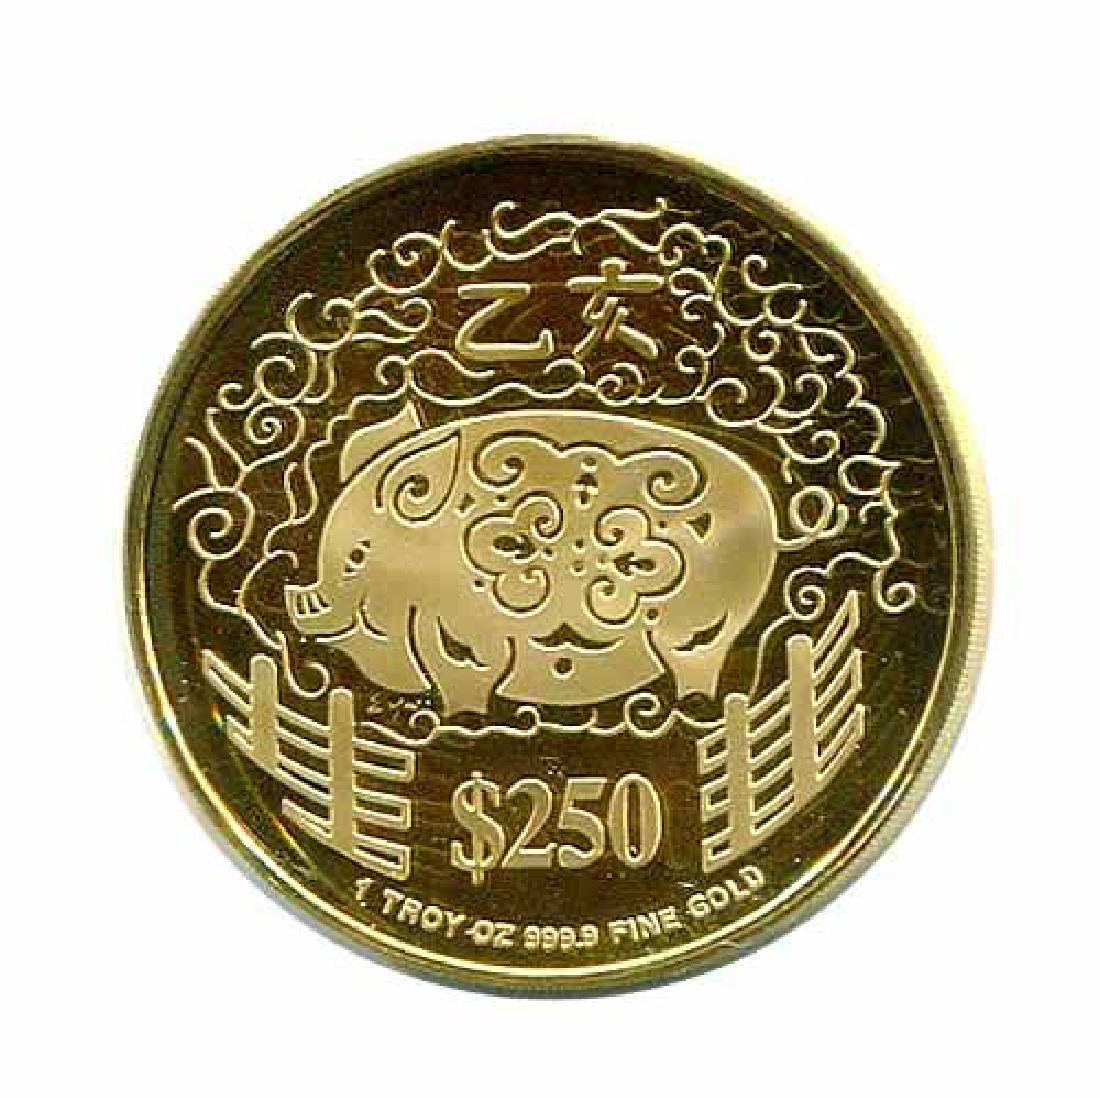 Singapore $250 Gold PF 1995 Year of the Pig